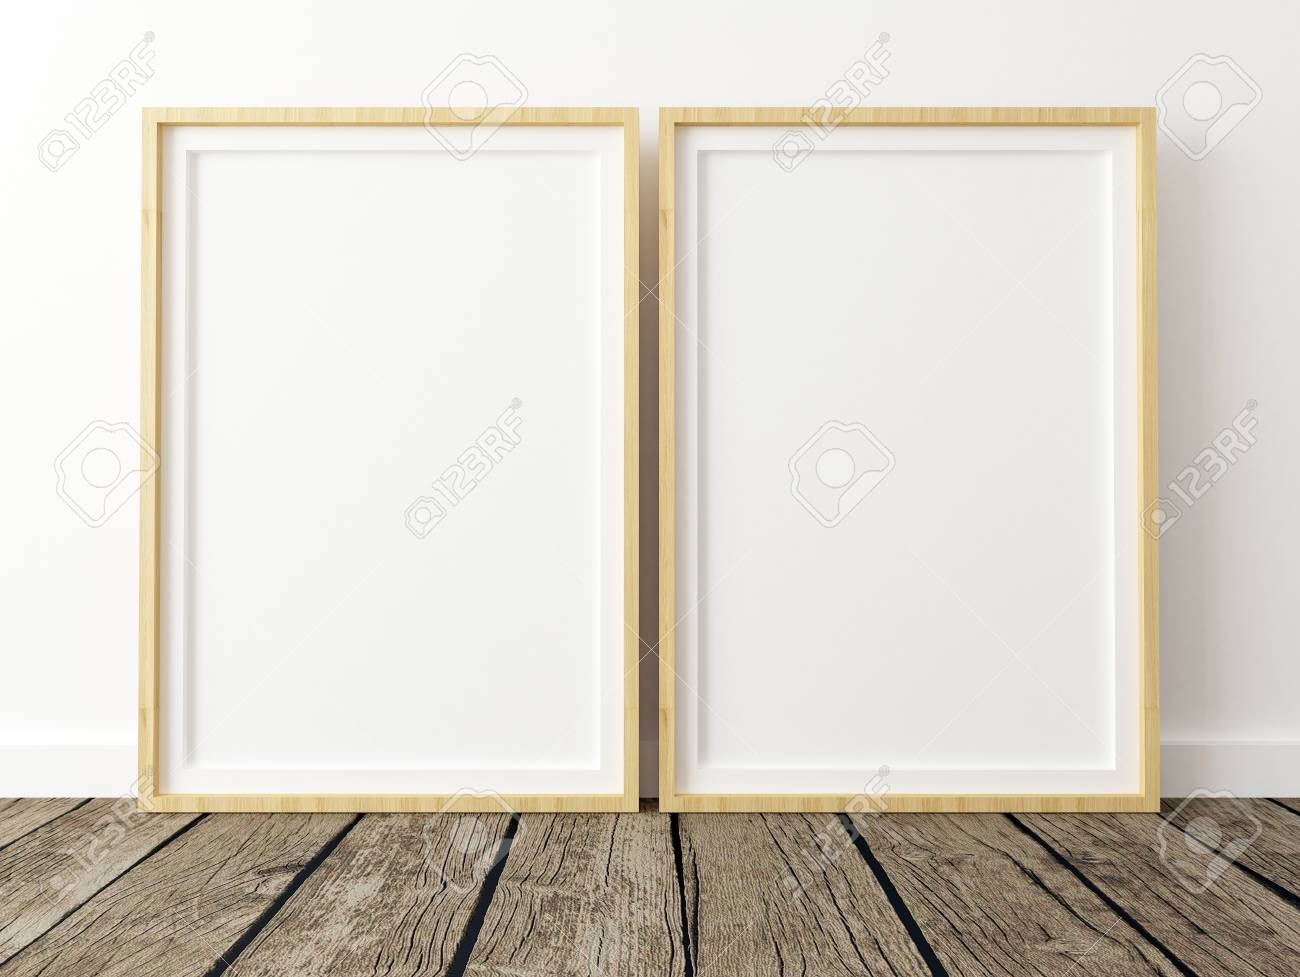 Set Of 2 Poster Frame Mockups On White Wall Stock Photo, Picture And ...